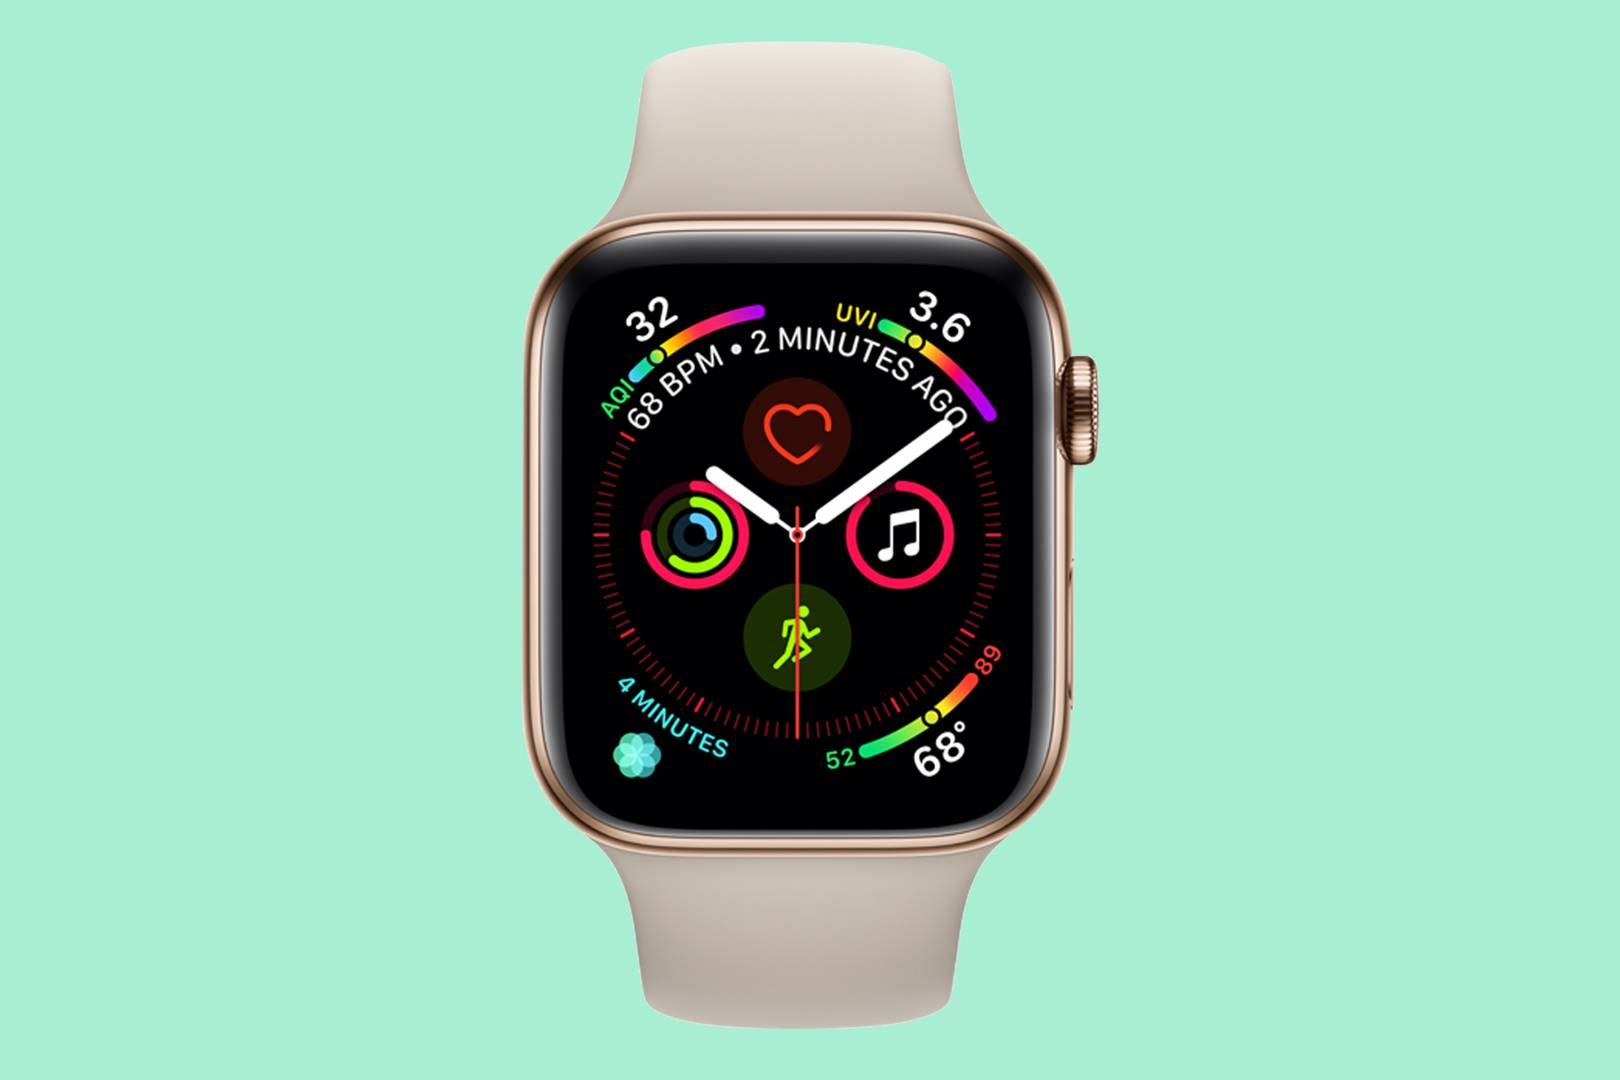 The ECG in the Apple Watch Series 4 is a potential healthcare